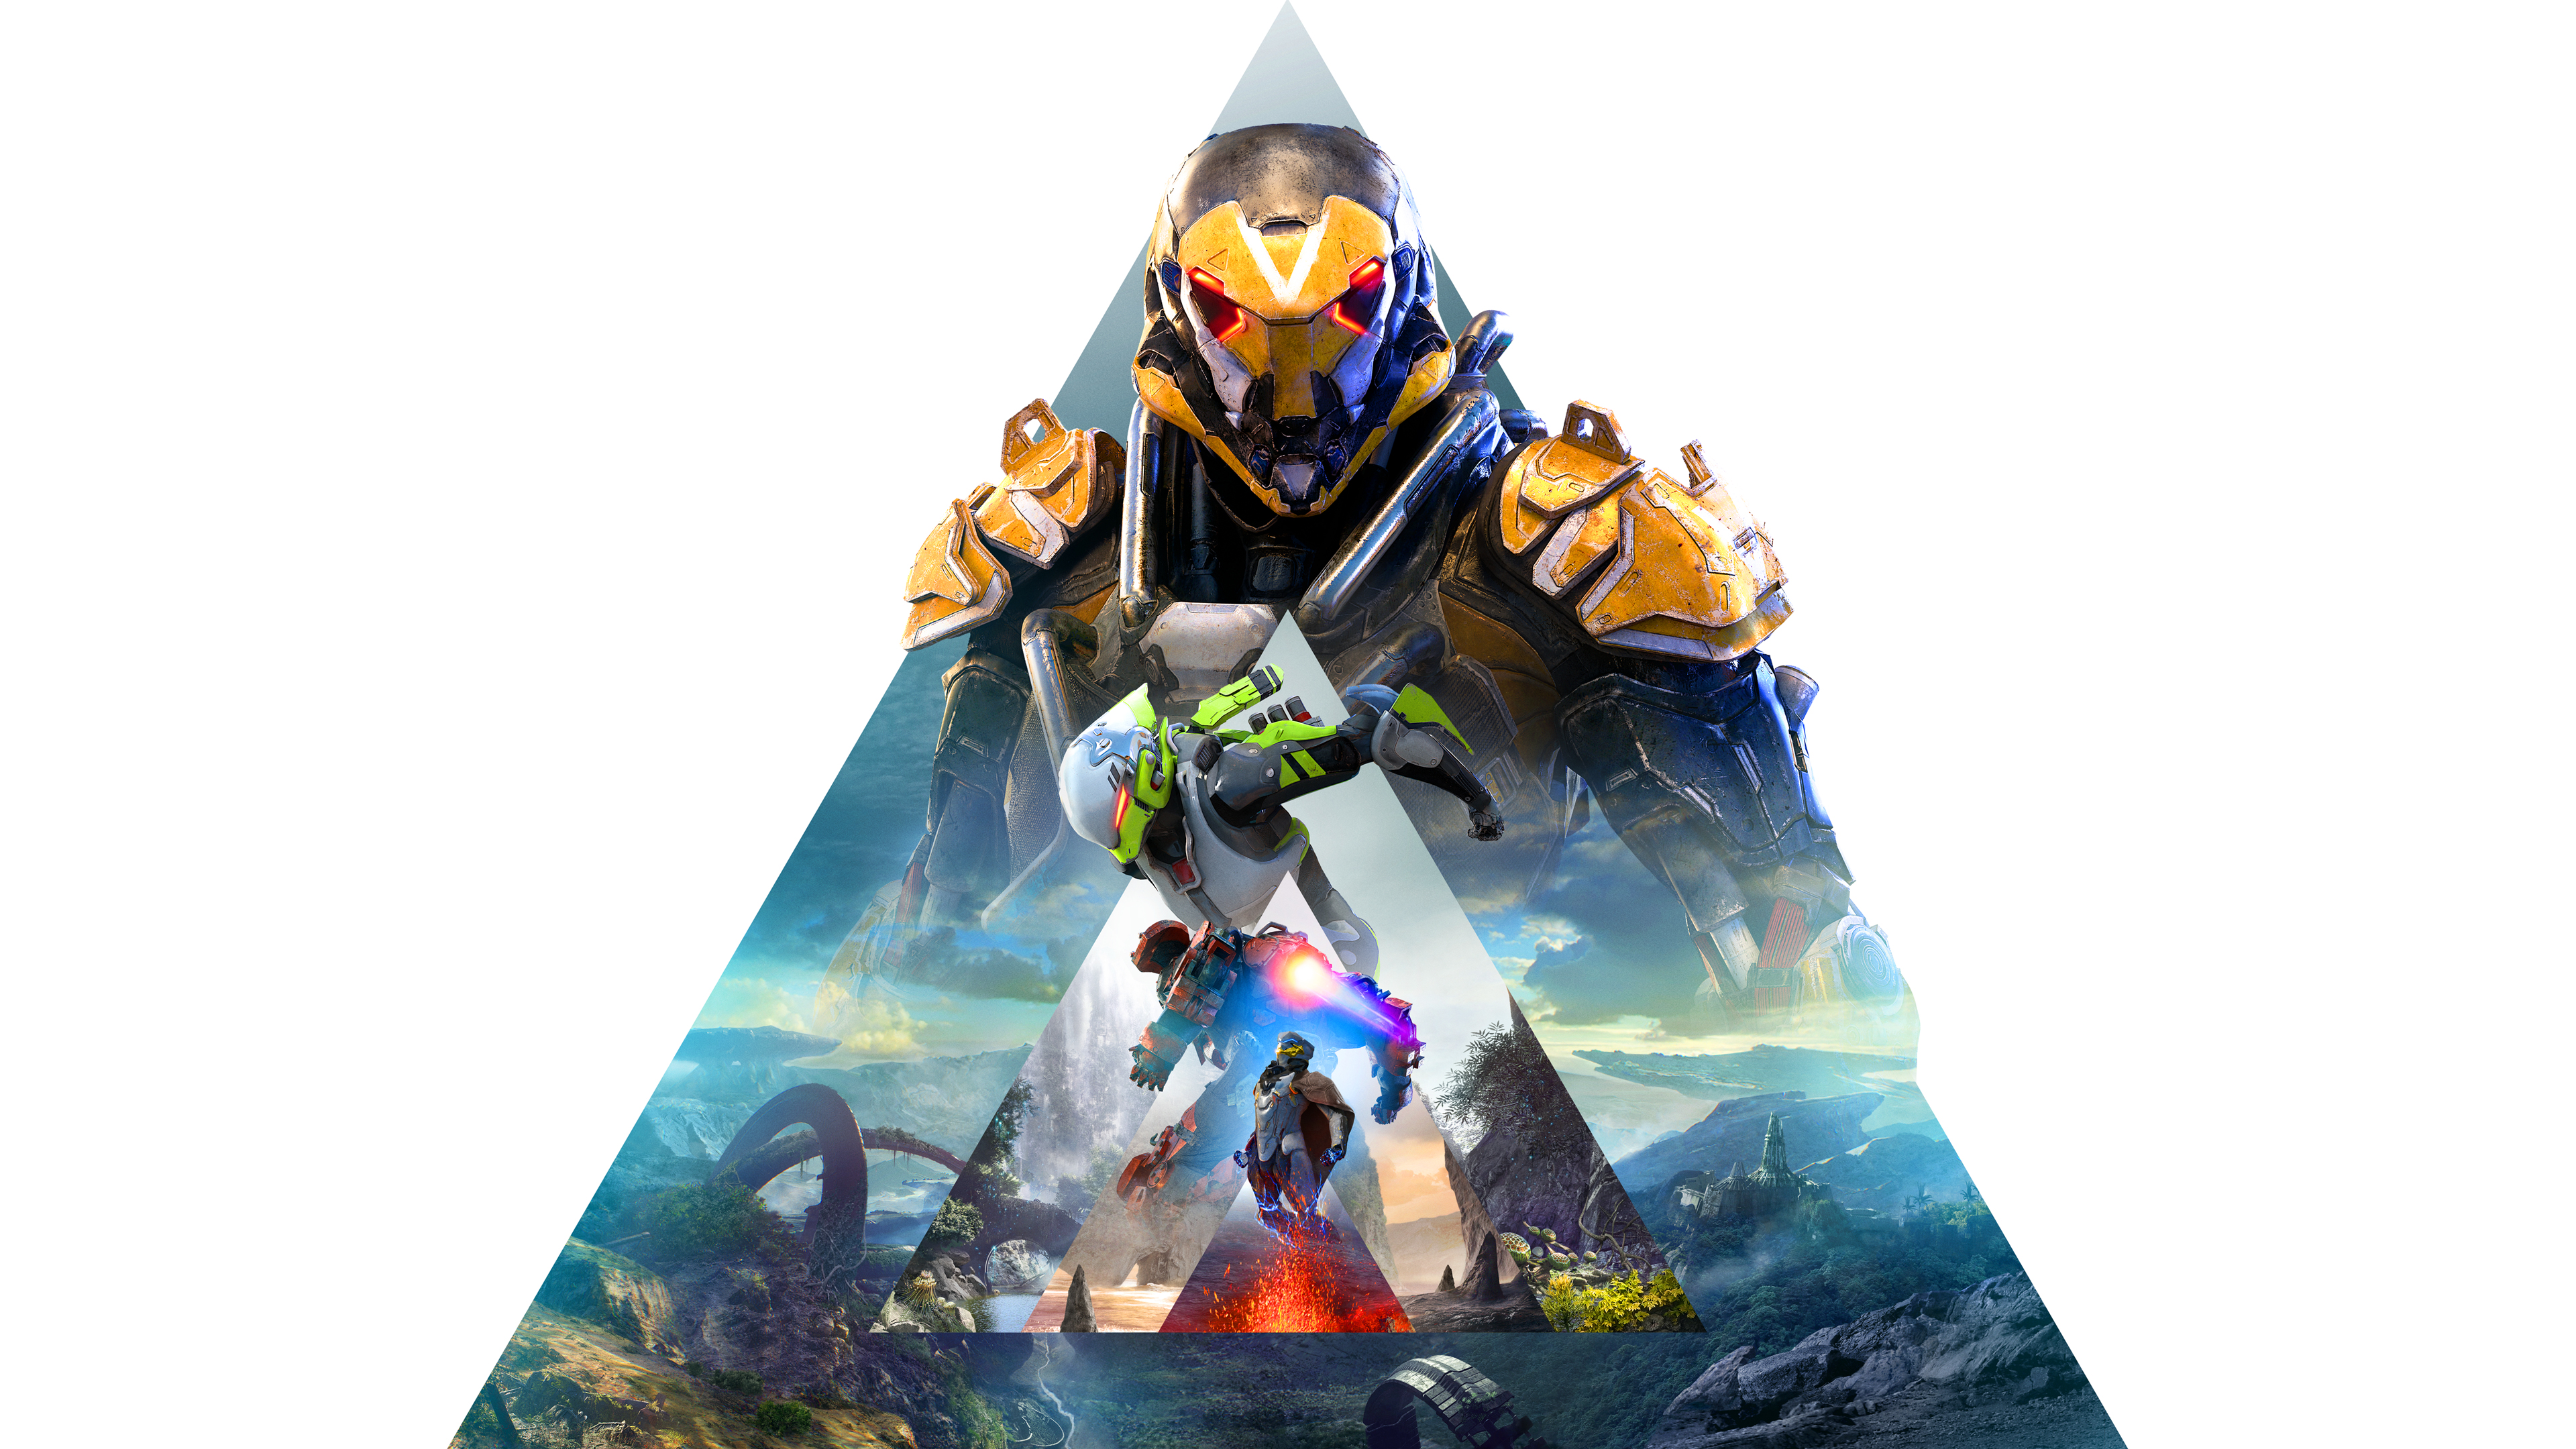 anthem legion of dawn 4k 1537691612 - Anthem Legion Of Dawn 4k - xbox games wallpapers, pc games wallpapers, hd-wallpapers, games wallpapers, anthem wallpapers, 4k-wallpapers, 2019 games wallpapers